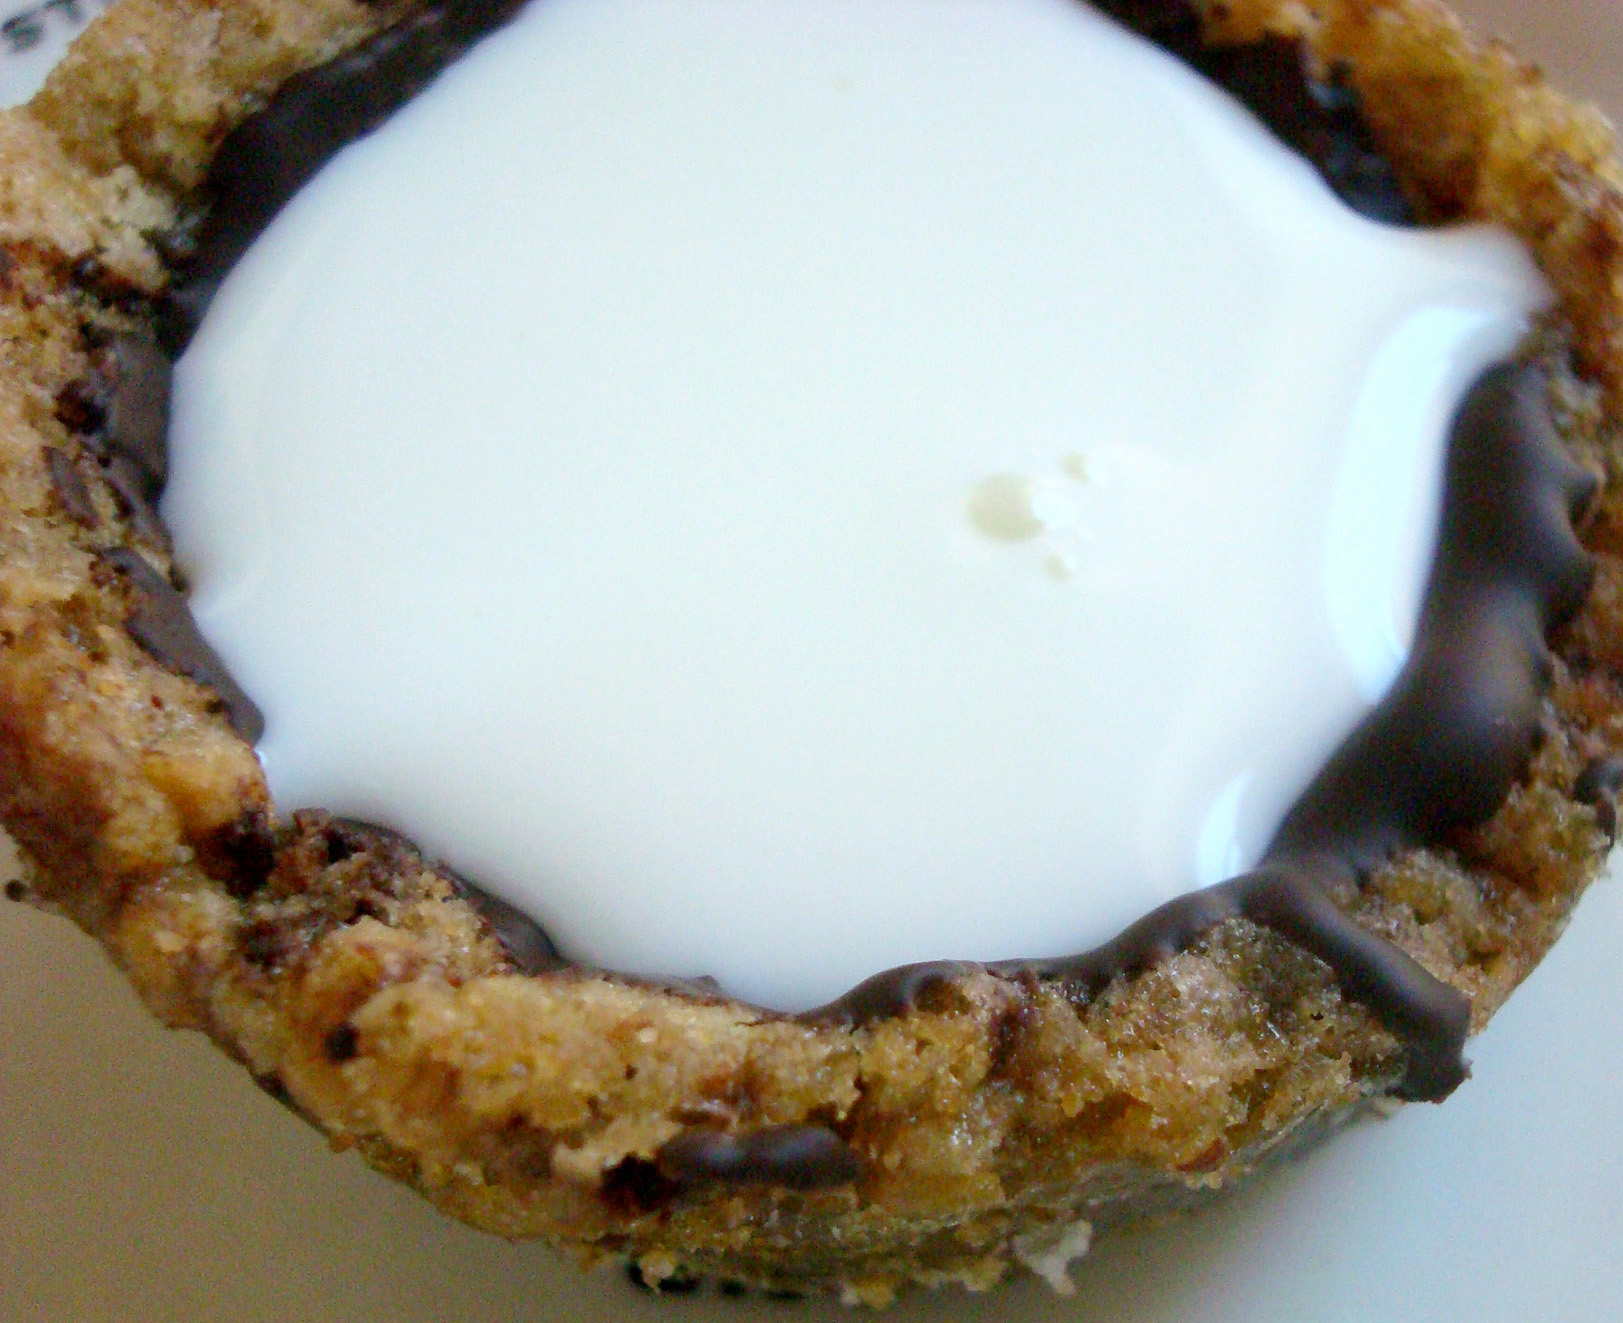 Cookie cup lined with chocolate, filled with milk